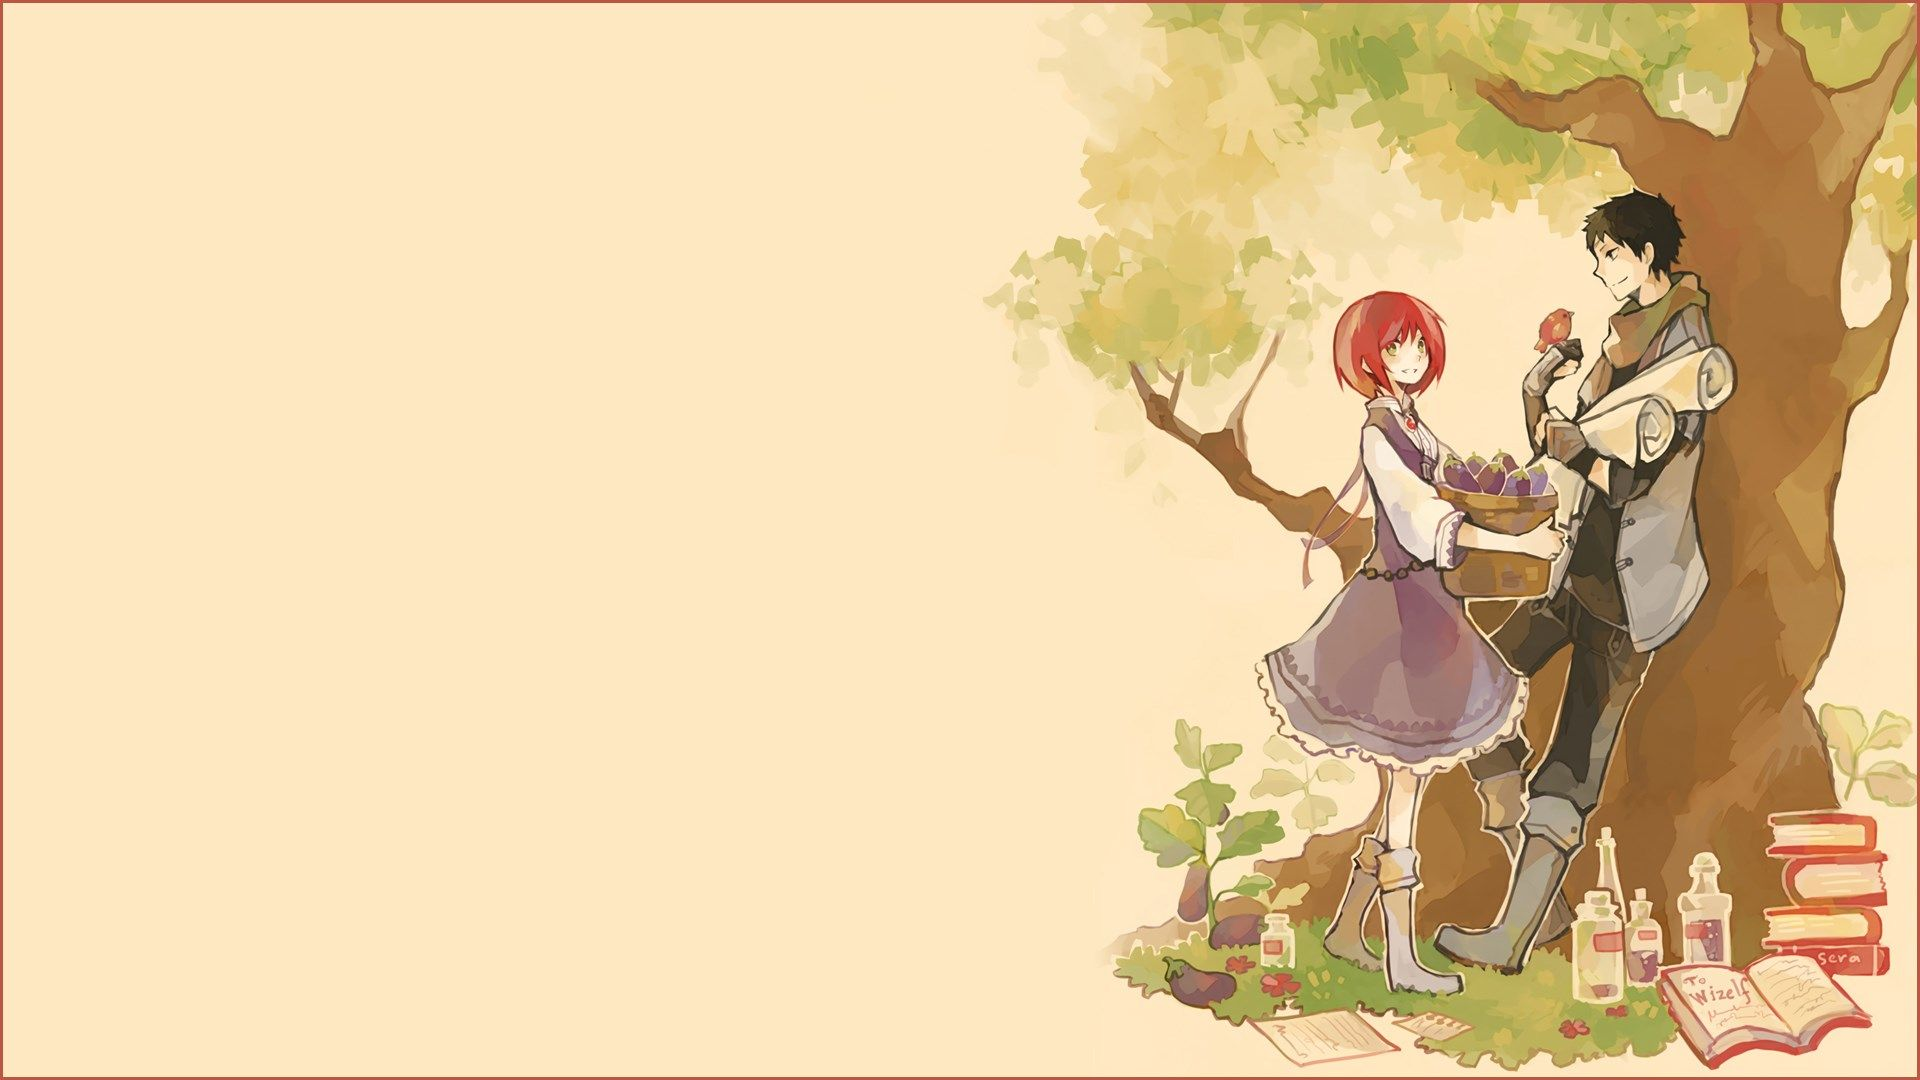 Snow White With The Red Hair Wallpaper Hd Pack 1920x1080 186 Kb Snow White With The Red Hair Snow White Red Hair